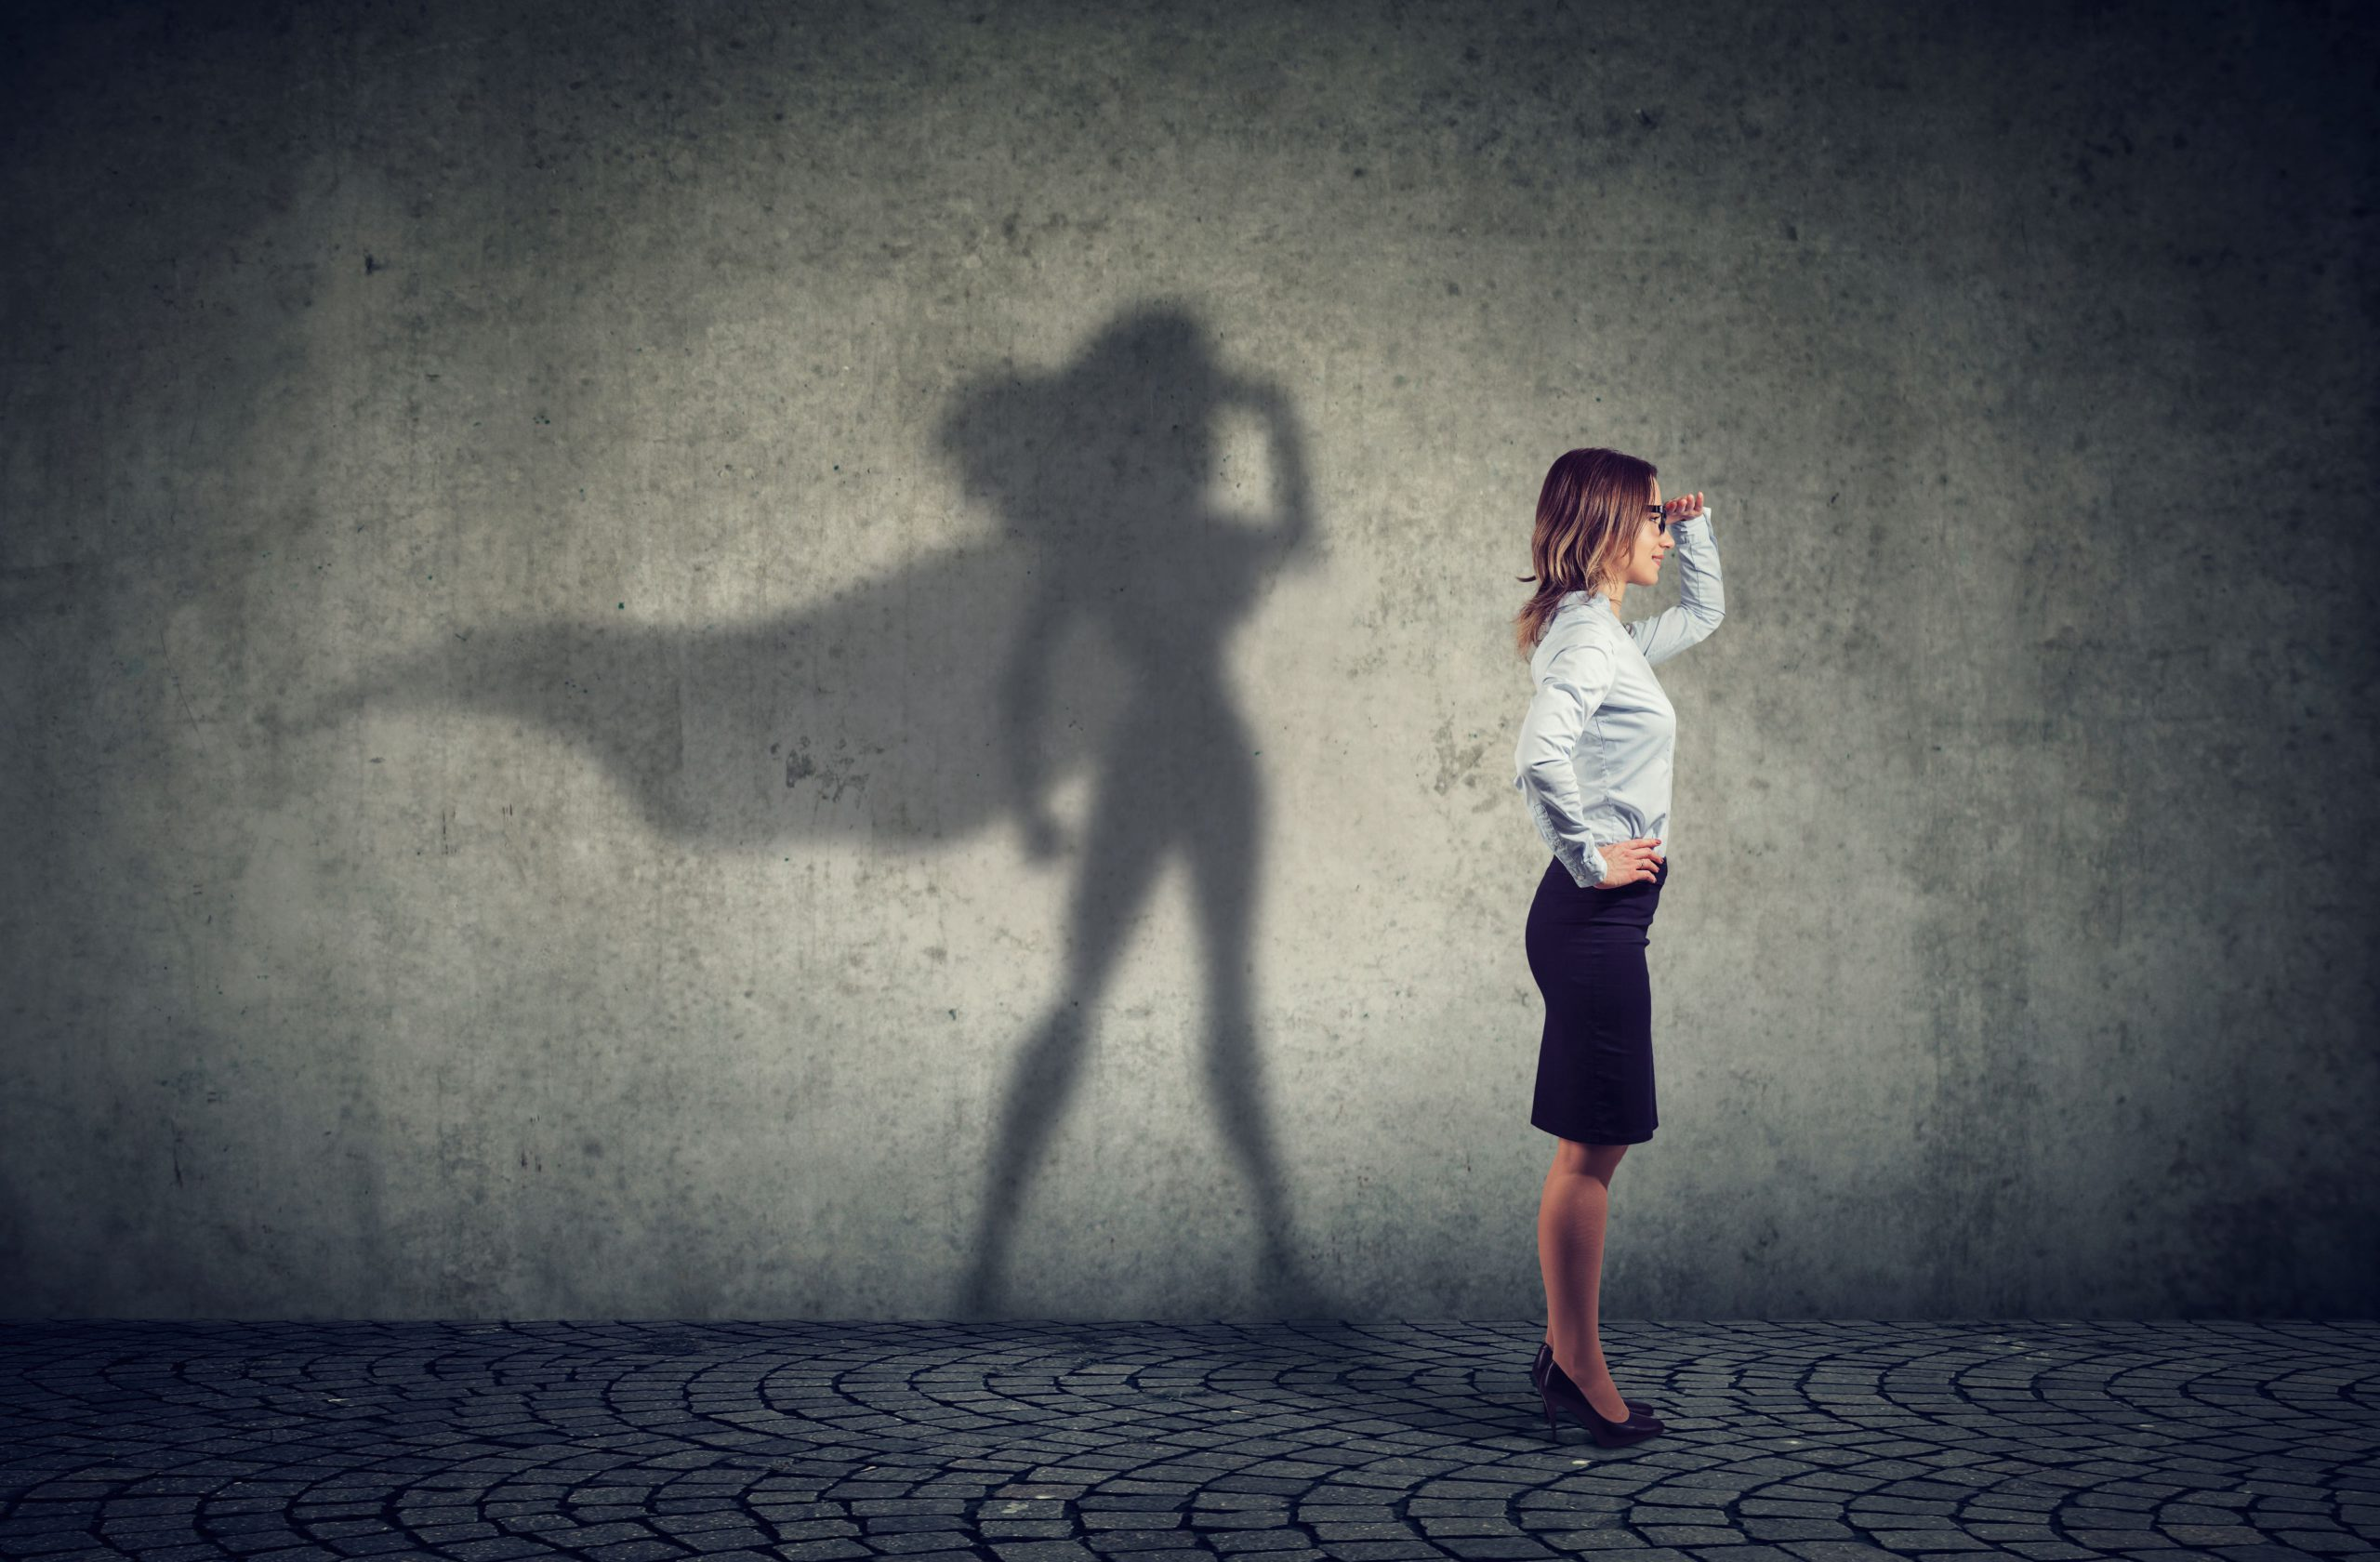 A lady is standing looking towards the right which represents CSMs looking towards a bright future. Her shadow shows a cape which represents Cami.AI, an ally/friend who enables her to improve her efficiency and productivity by equipping her with the necessary tools. Just like a superhero suit.